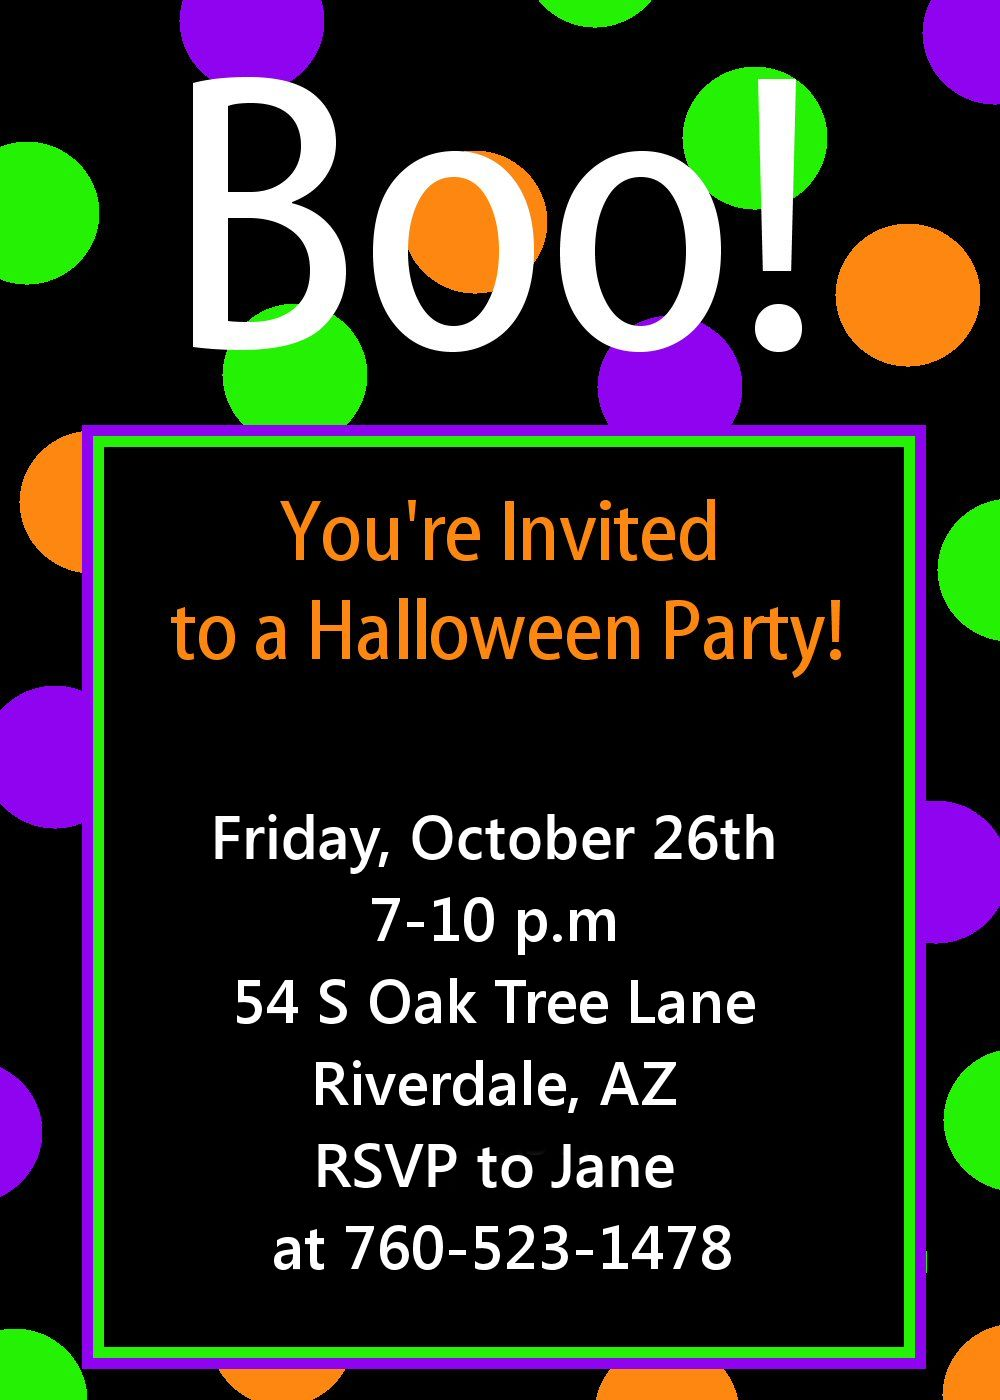 009 Awful Free Halloween Party Invitation Template Picture  Templates Download Printable BirthdayFull